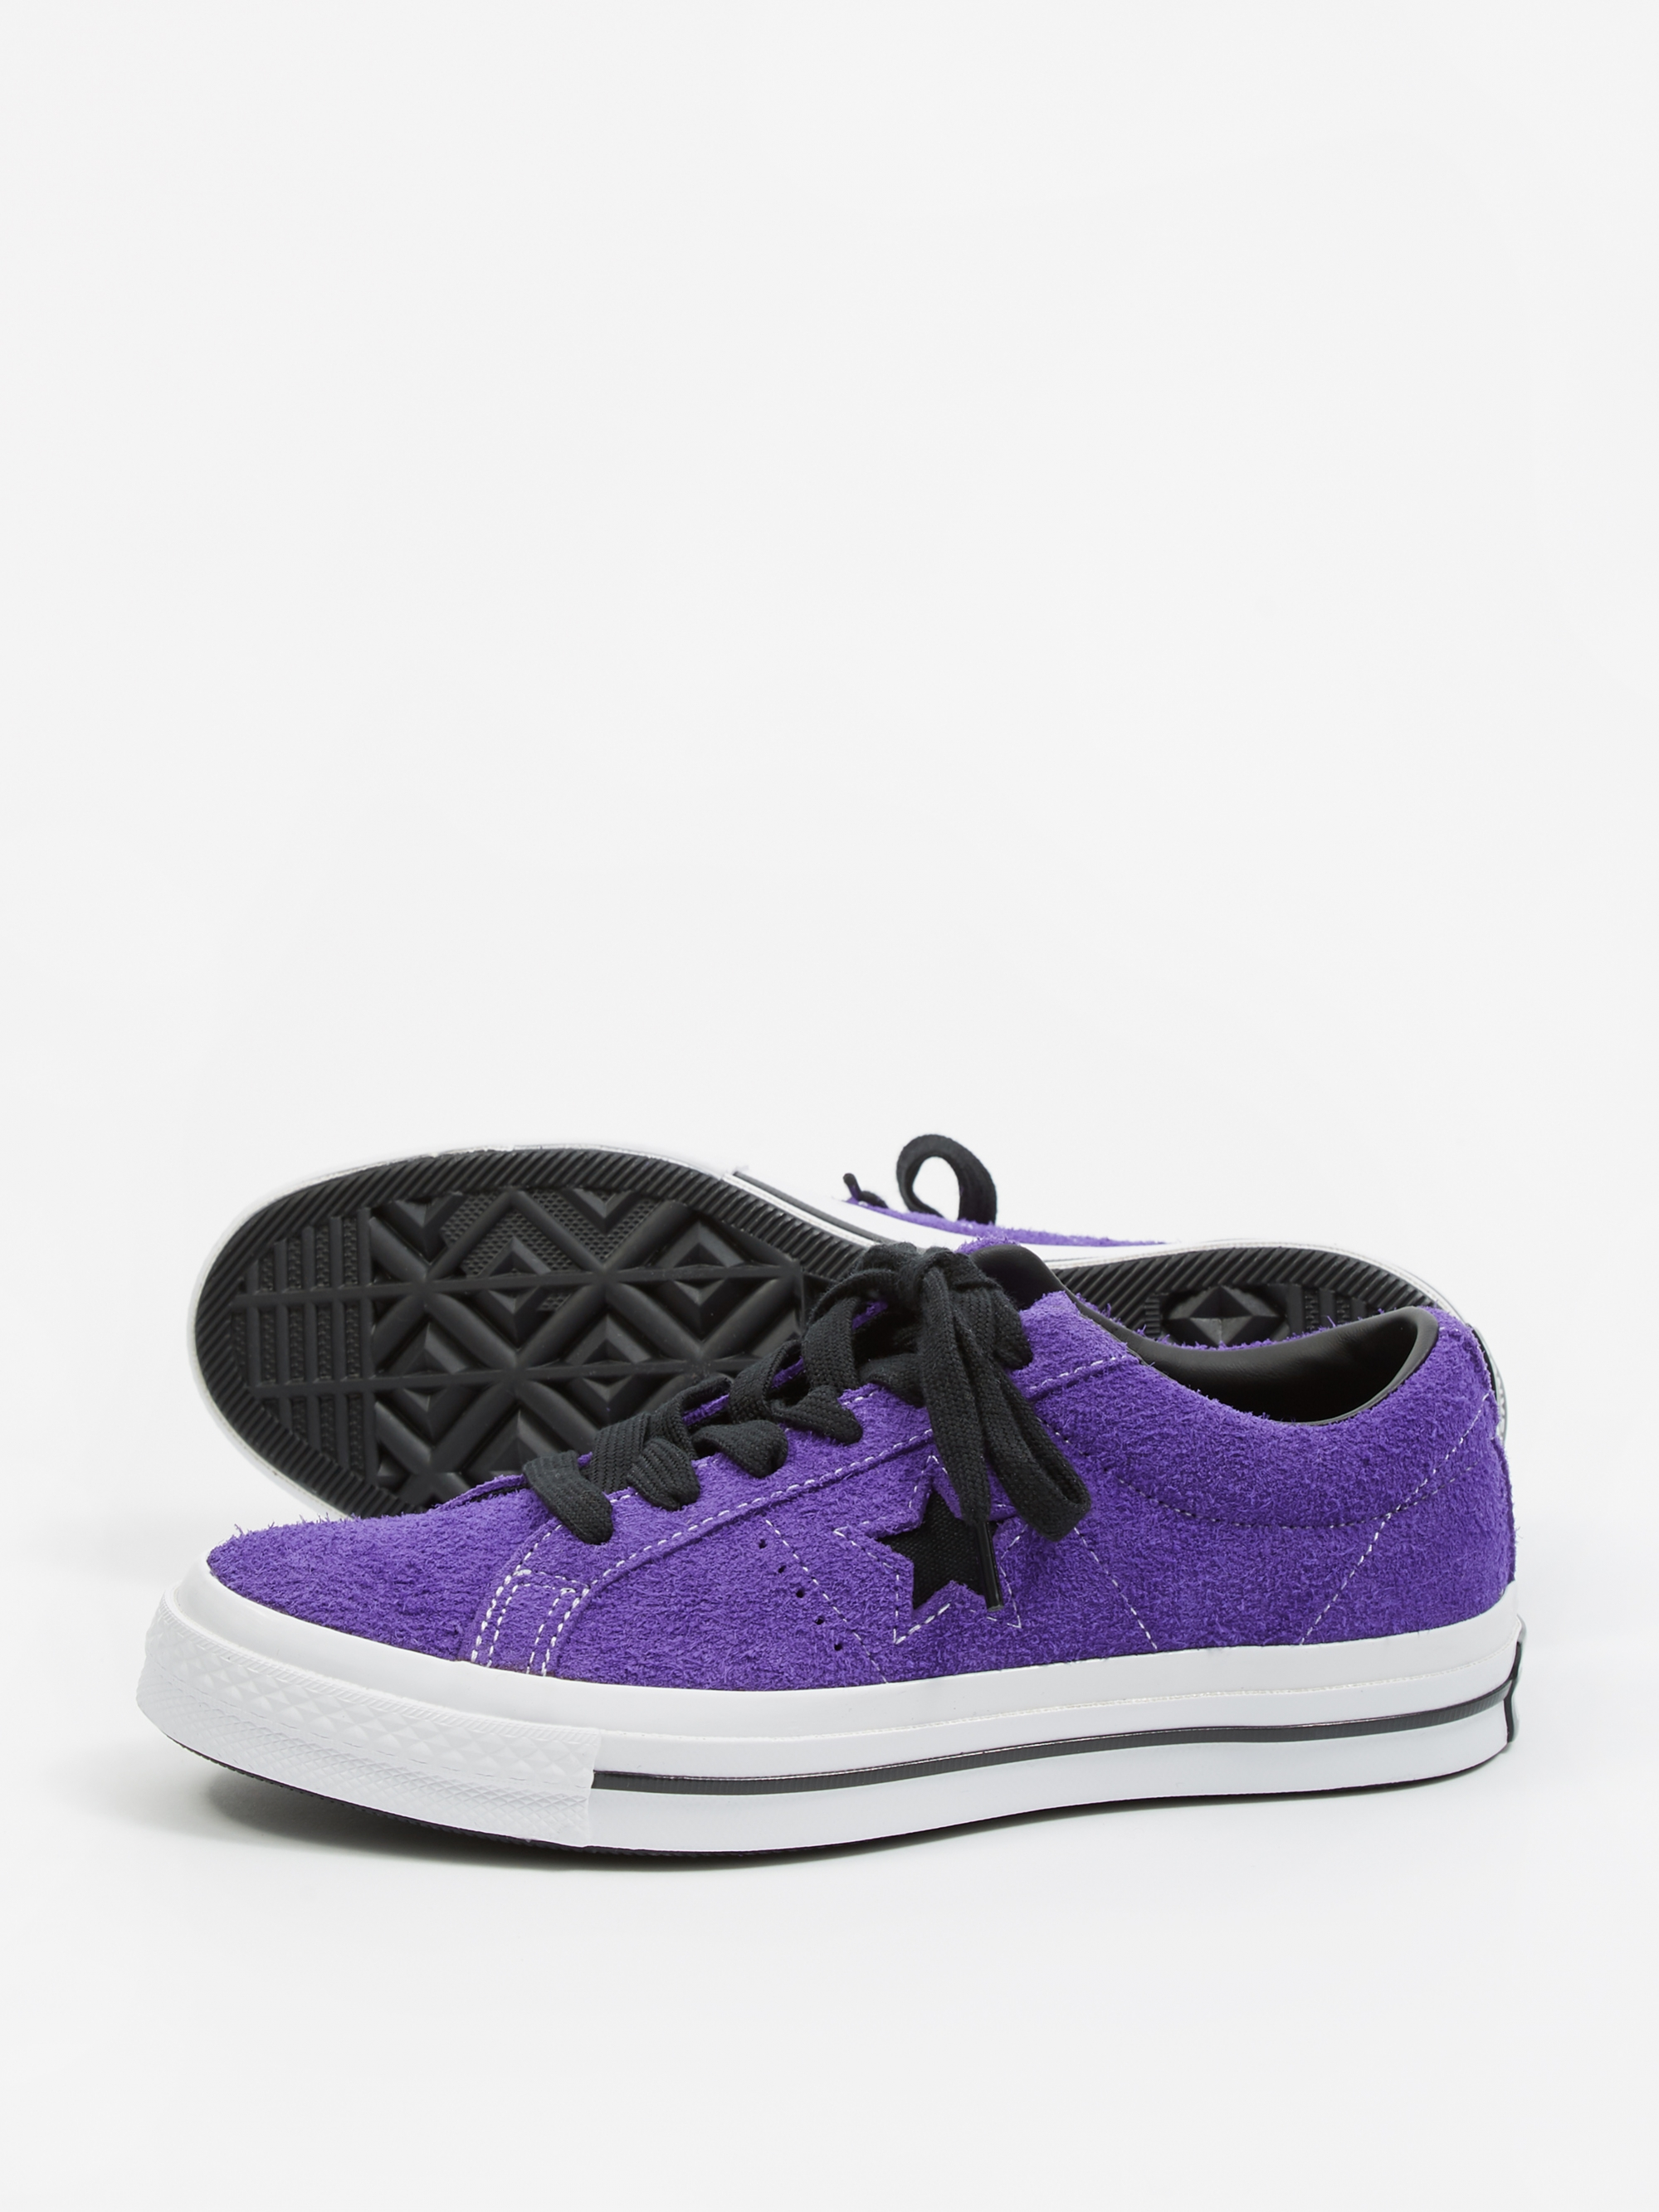 0afb46ae5a4a Converse One Star - Court Purple